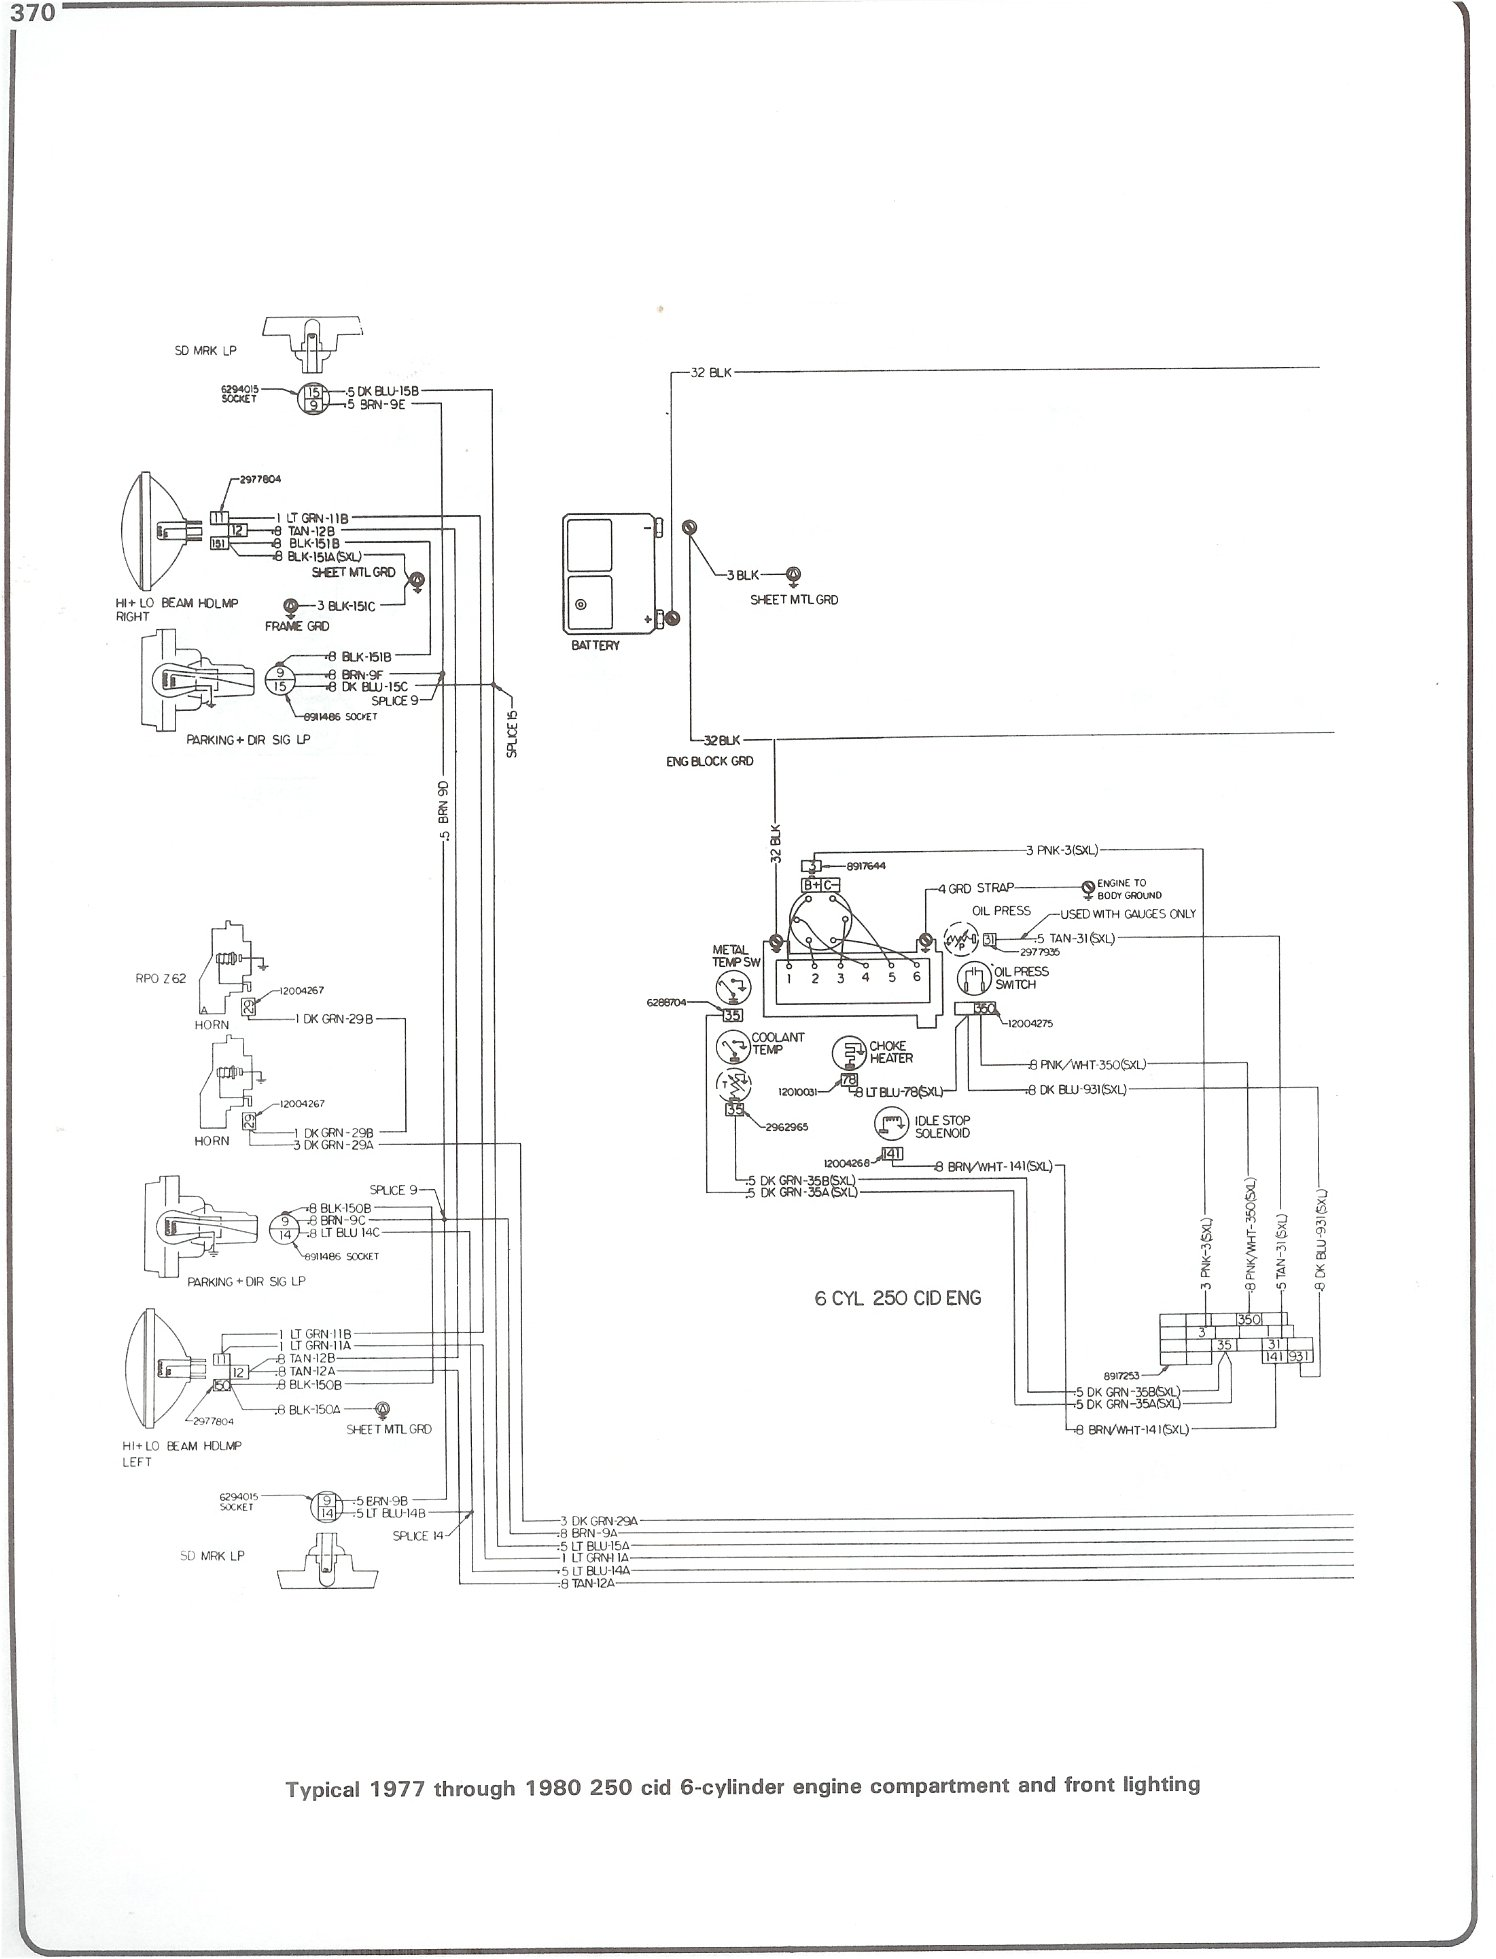 [SCHEMATICS_4JK]  Instrument Wiring Diagram For 1992 Chevy Blazer Diagram Of An Electric Wire  A Garage Door Opener - jeranglah.kucing-garong-26.sardaracomunitaospitale.it | 1992 S10 Pickup Truck Wiring Diagram |  | Wiring Diagram and Schematics